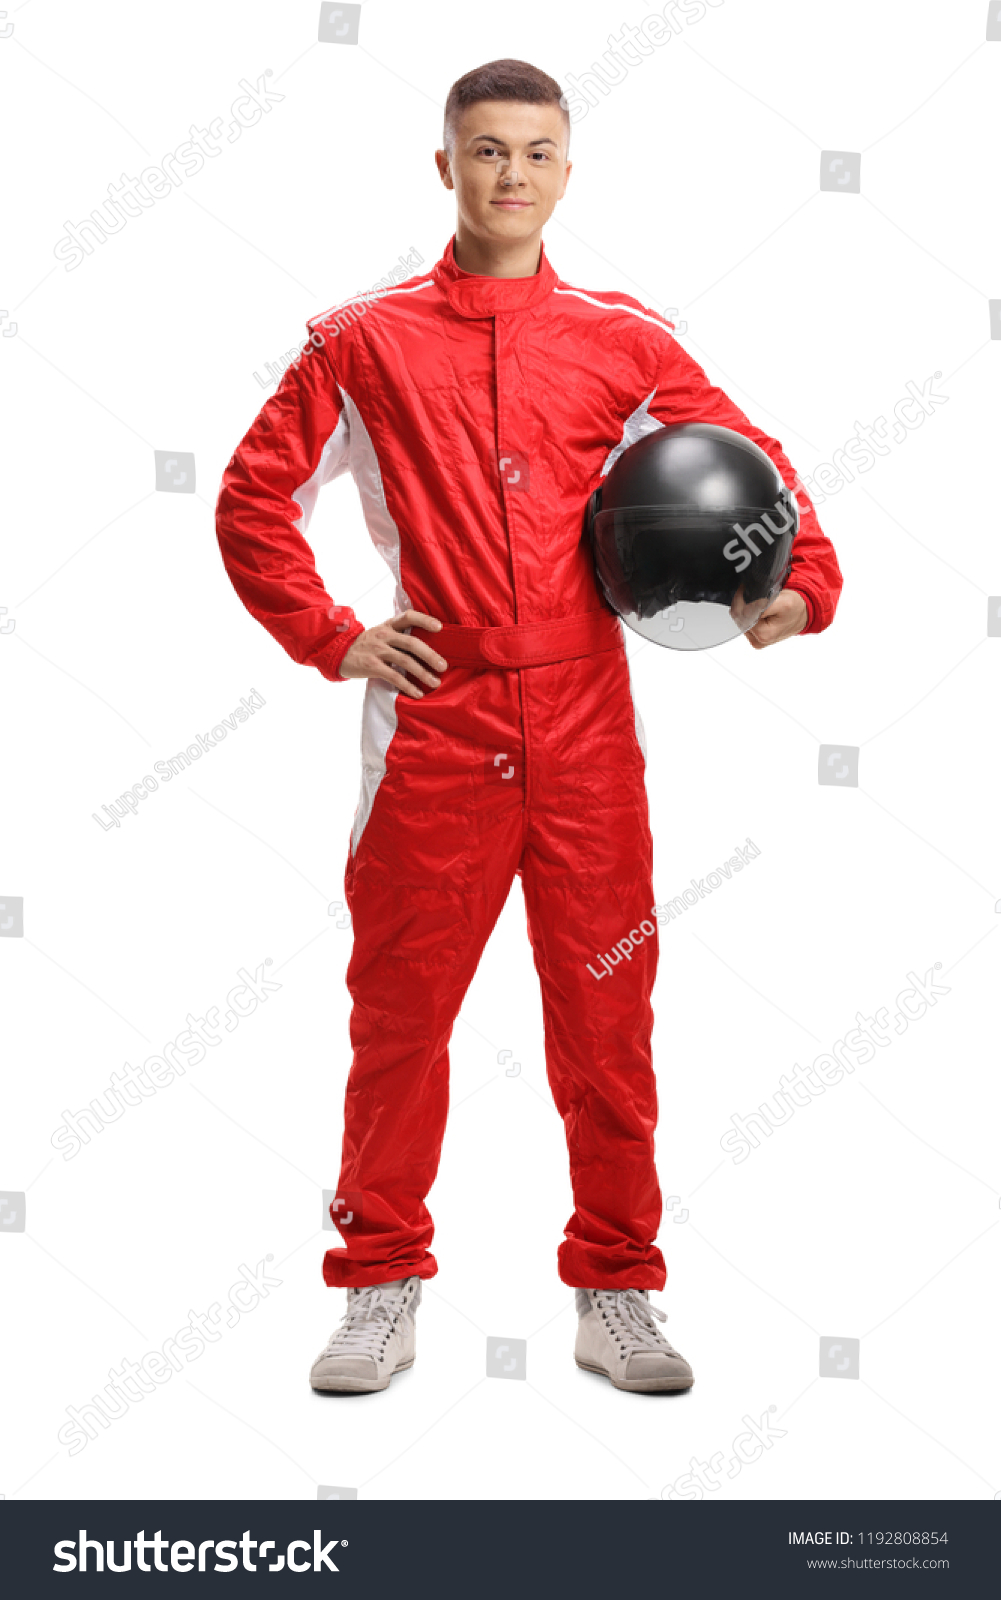 Full length portrait of a racer with a helmet isolated on white background #1192808854